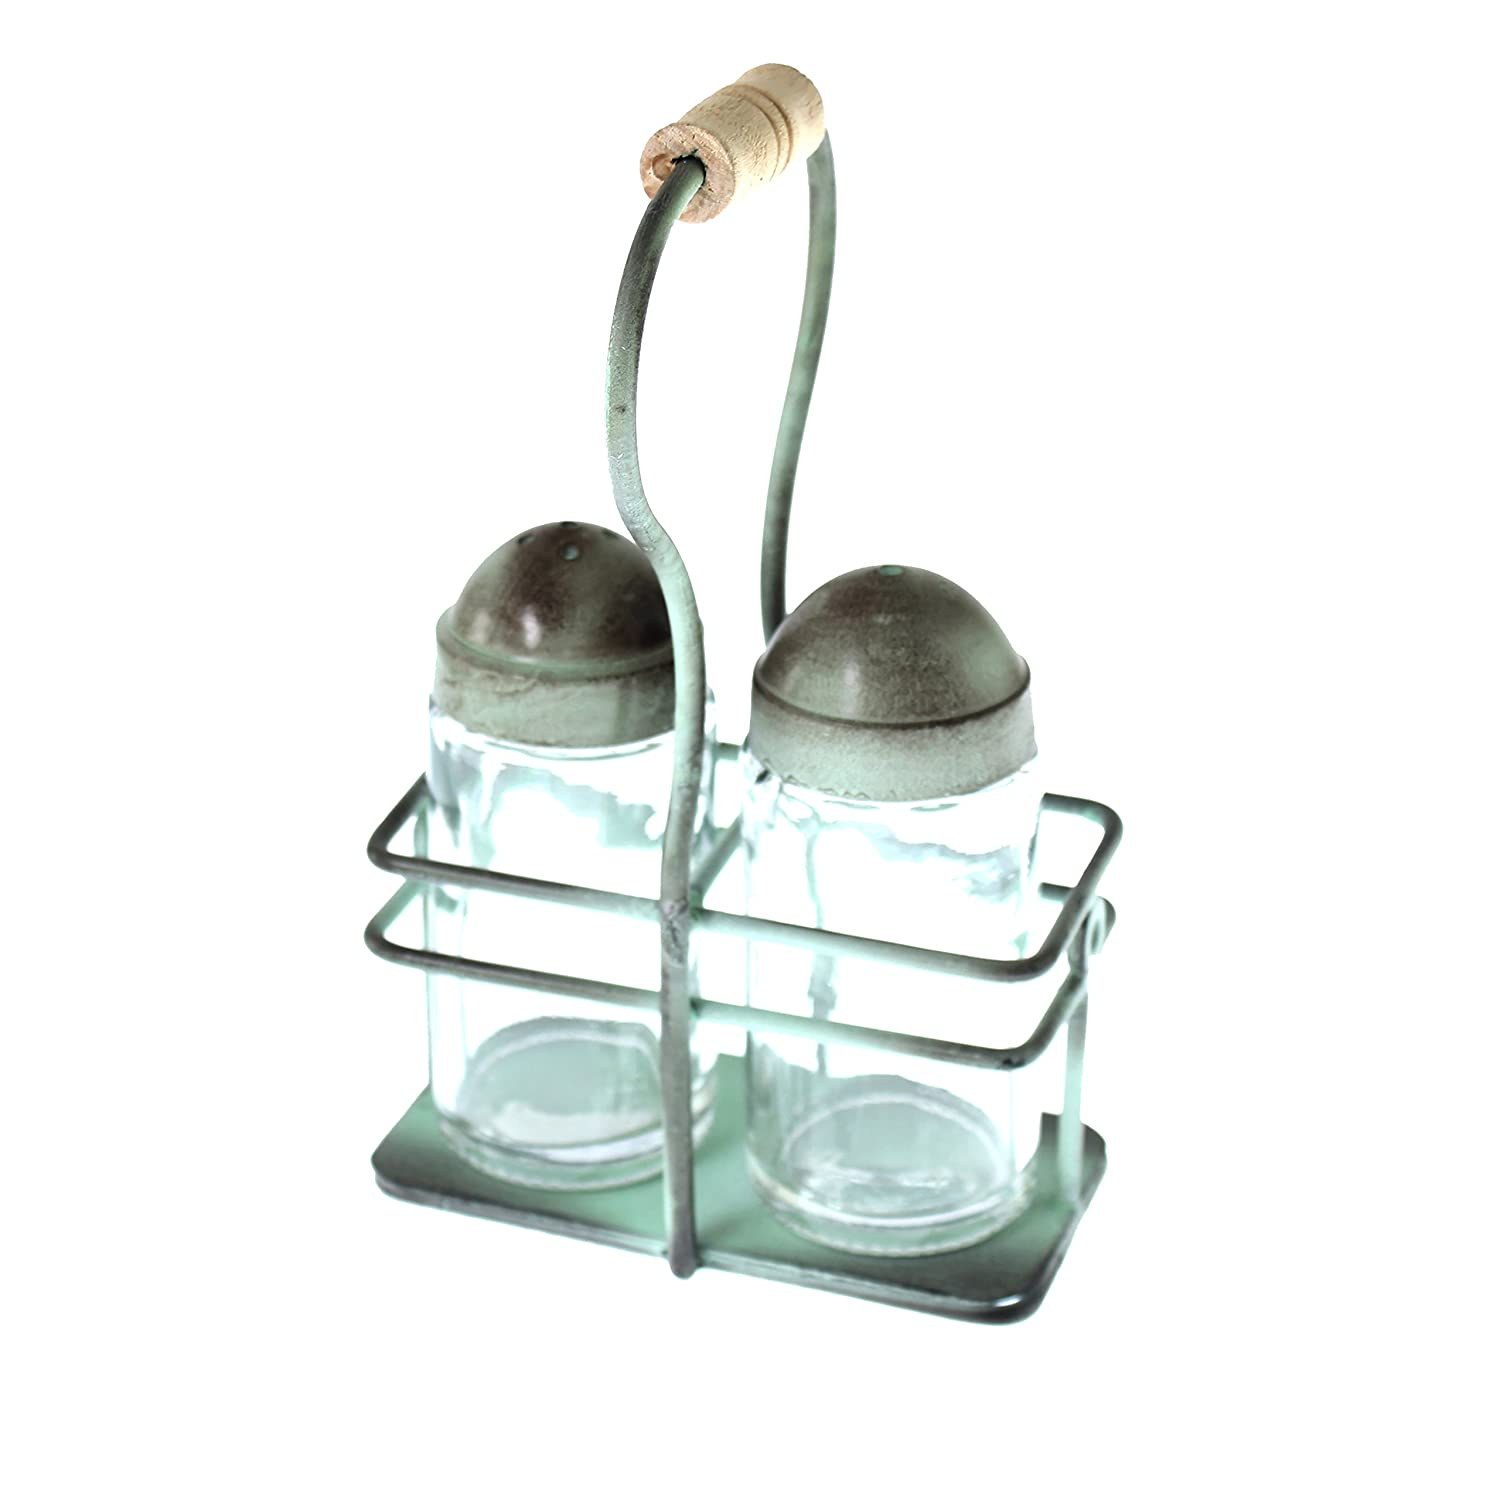 French Kitchen Collection Salt and Pepper Set, Steel, Antique Green, 10 x 9 x 17 cm Kom Amsterdam 2336